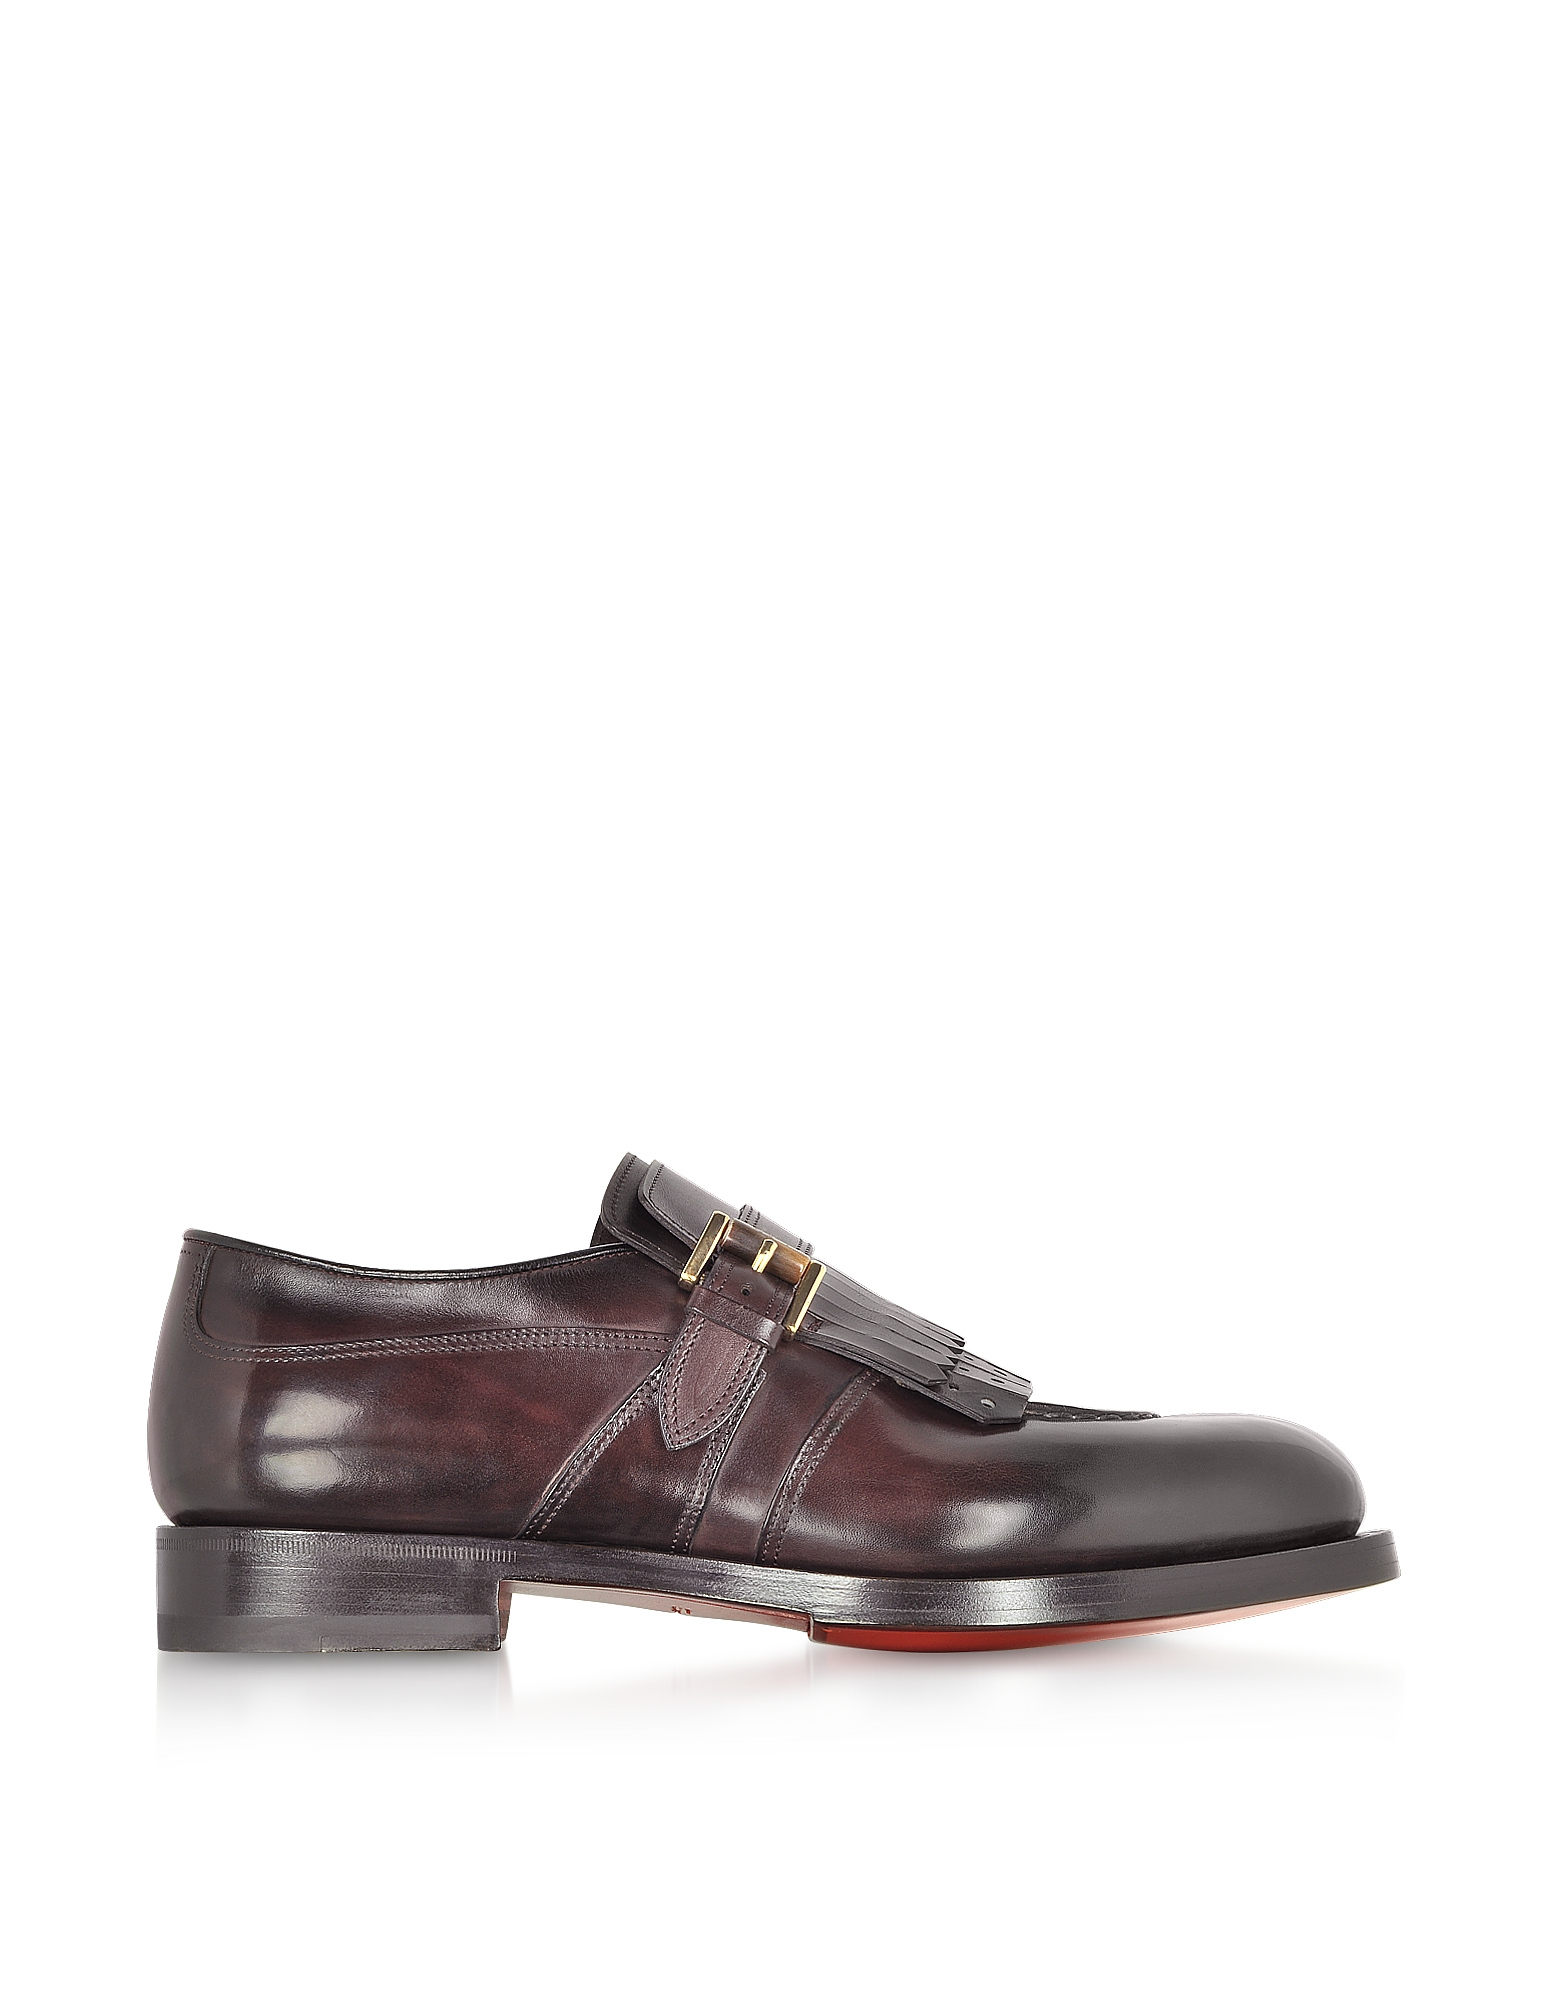 Santoni Designer Shoes, Burgundy Fringed Single Buckle Loafer Shoes